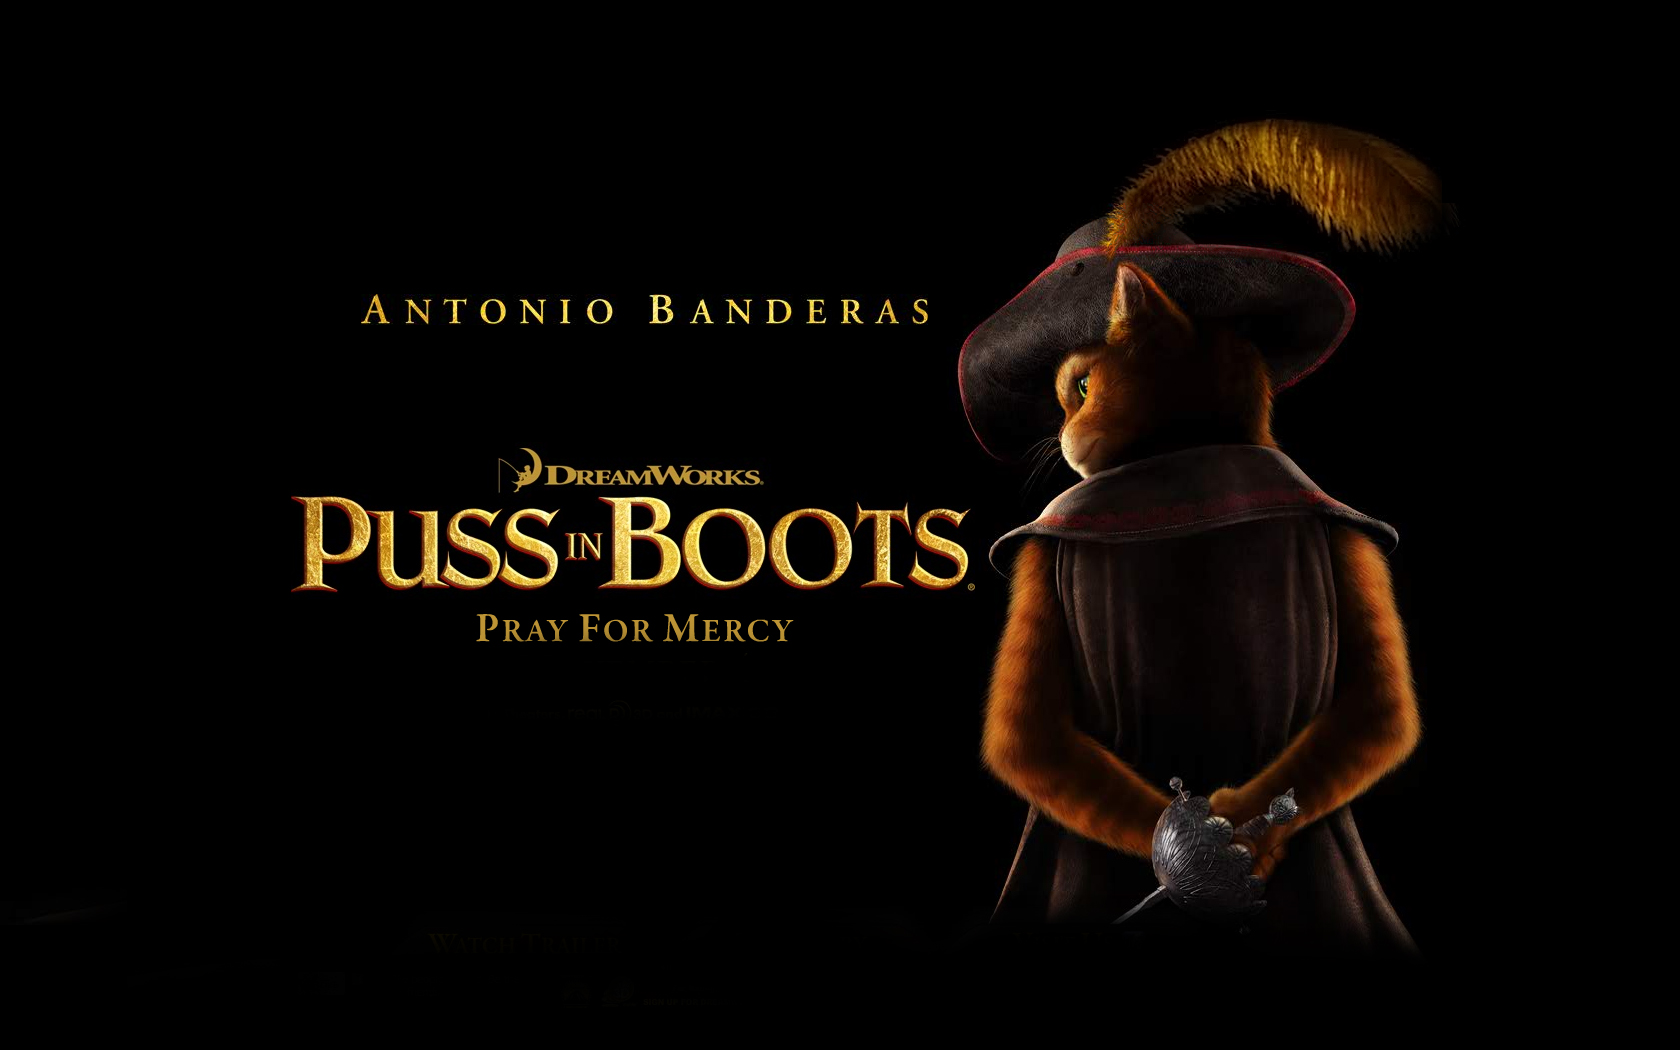 Puss in Boots (film)/Gallery